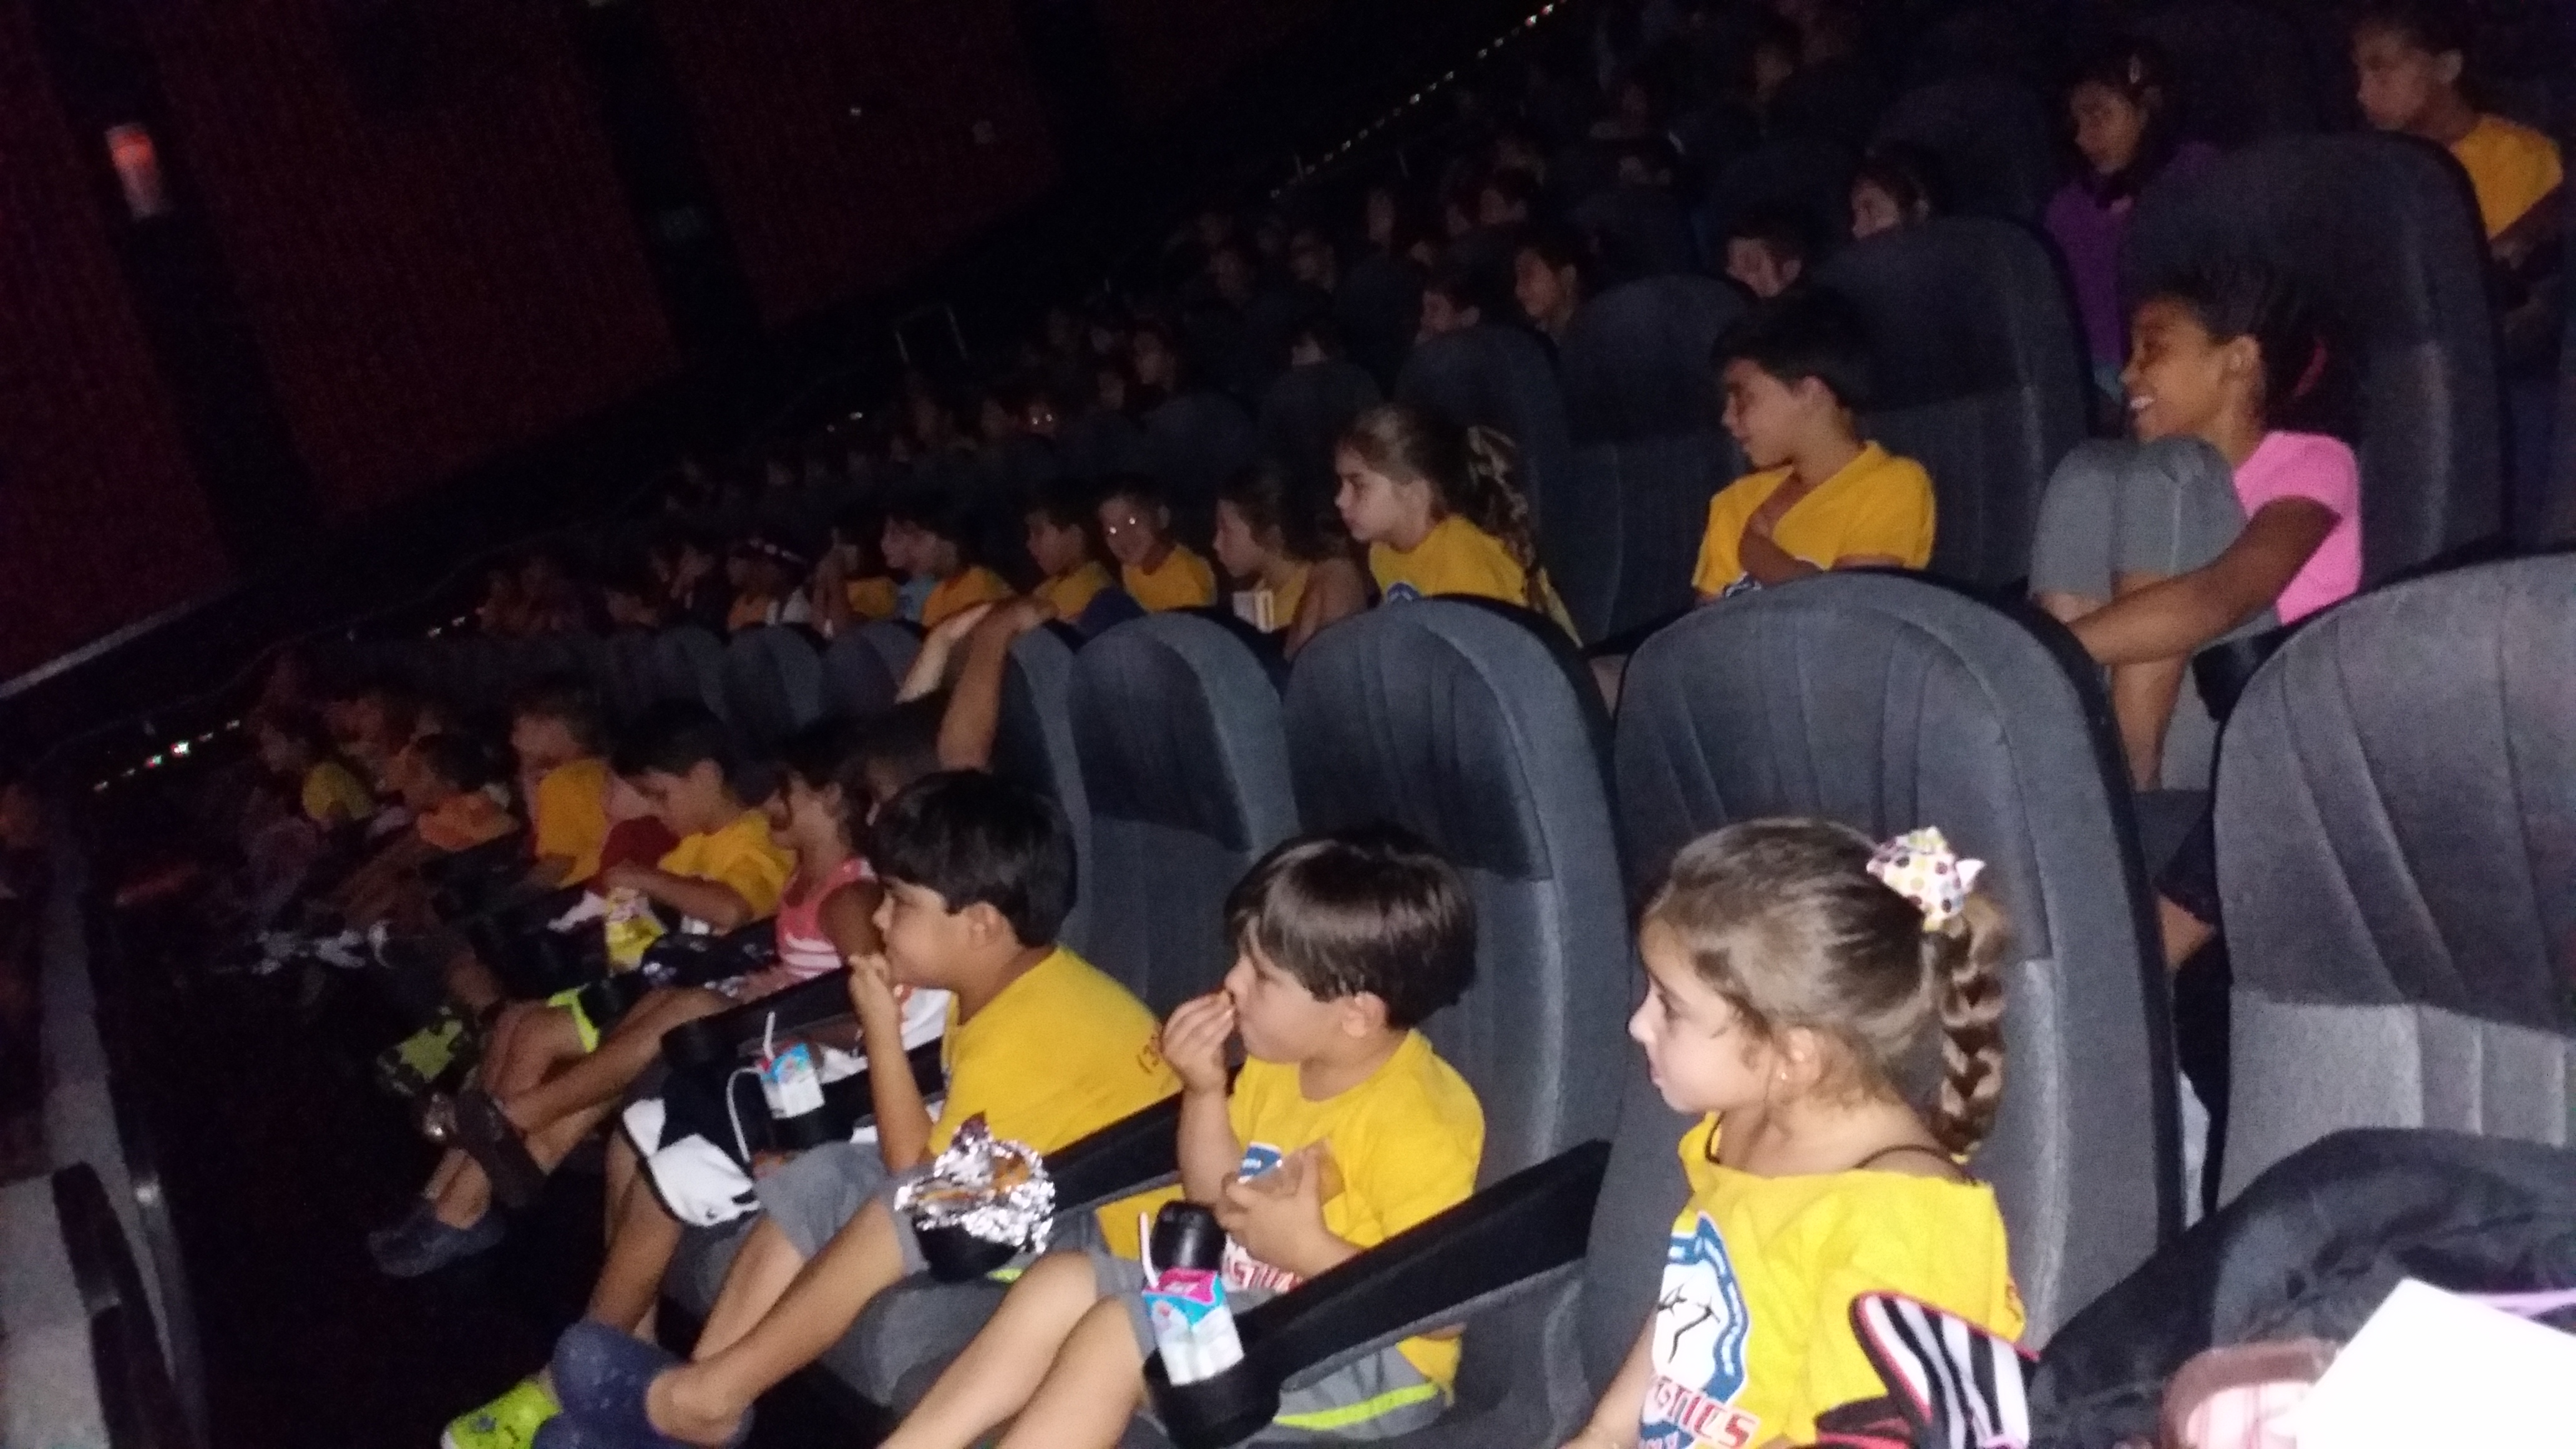 Movie time...it was good!